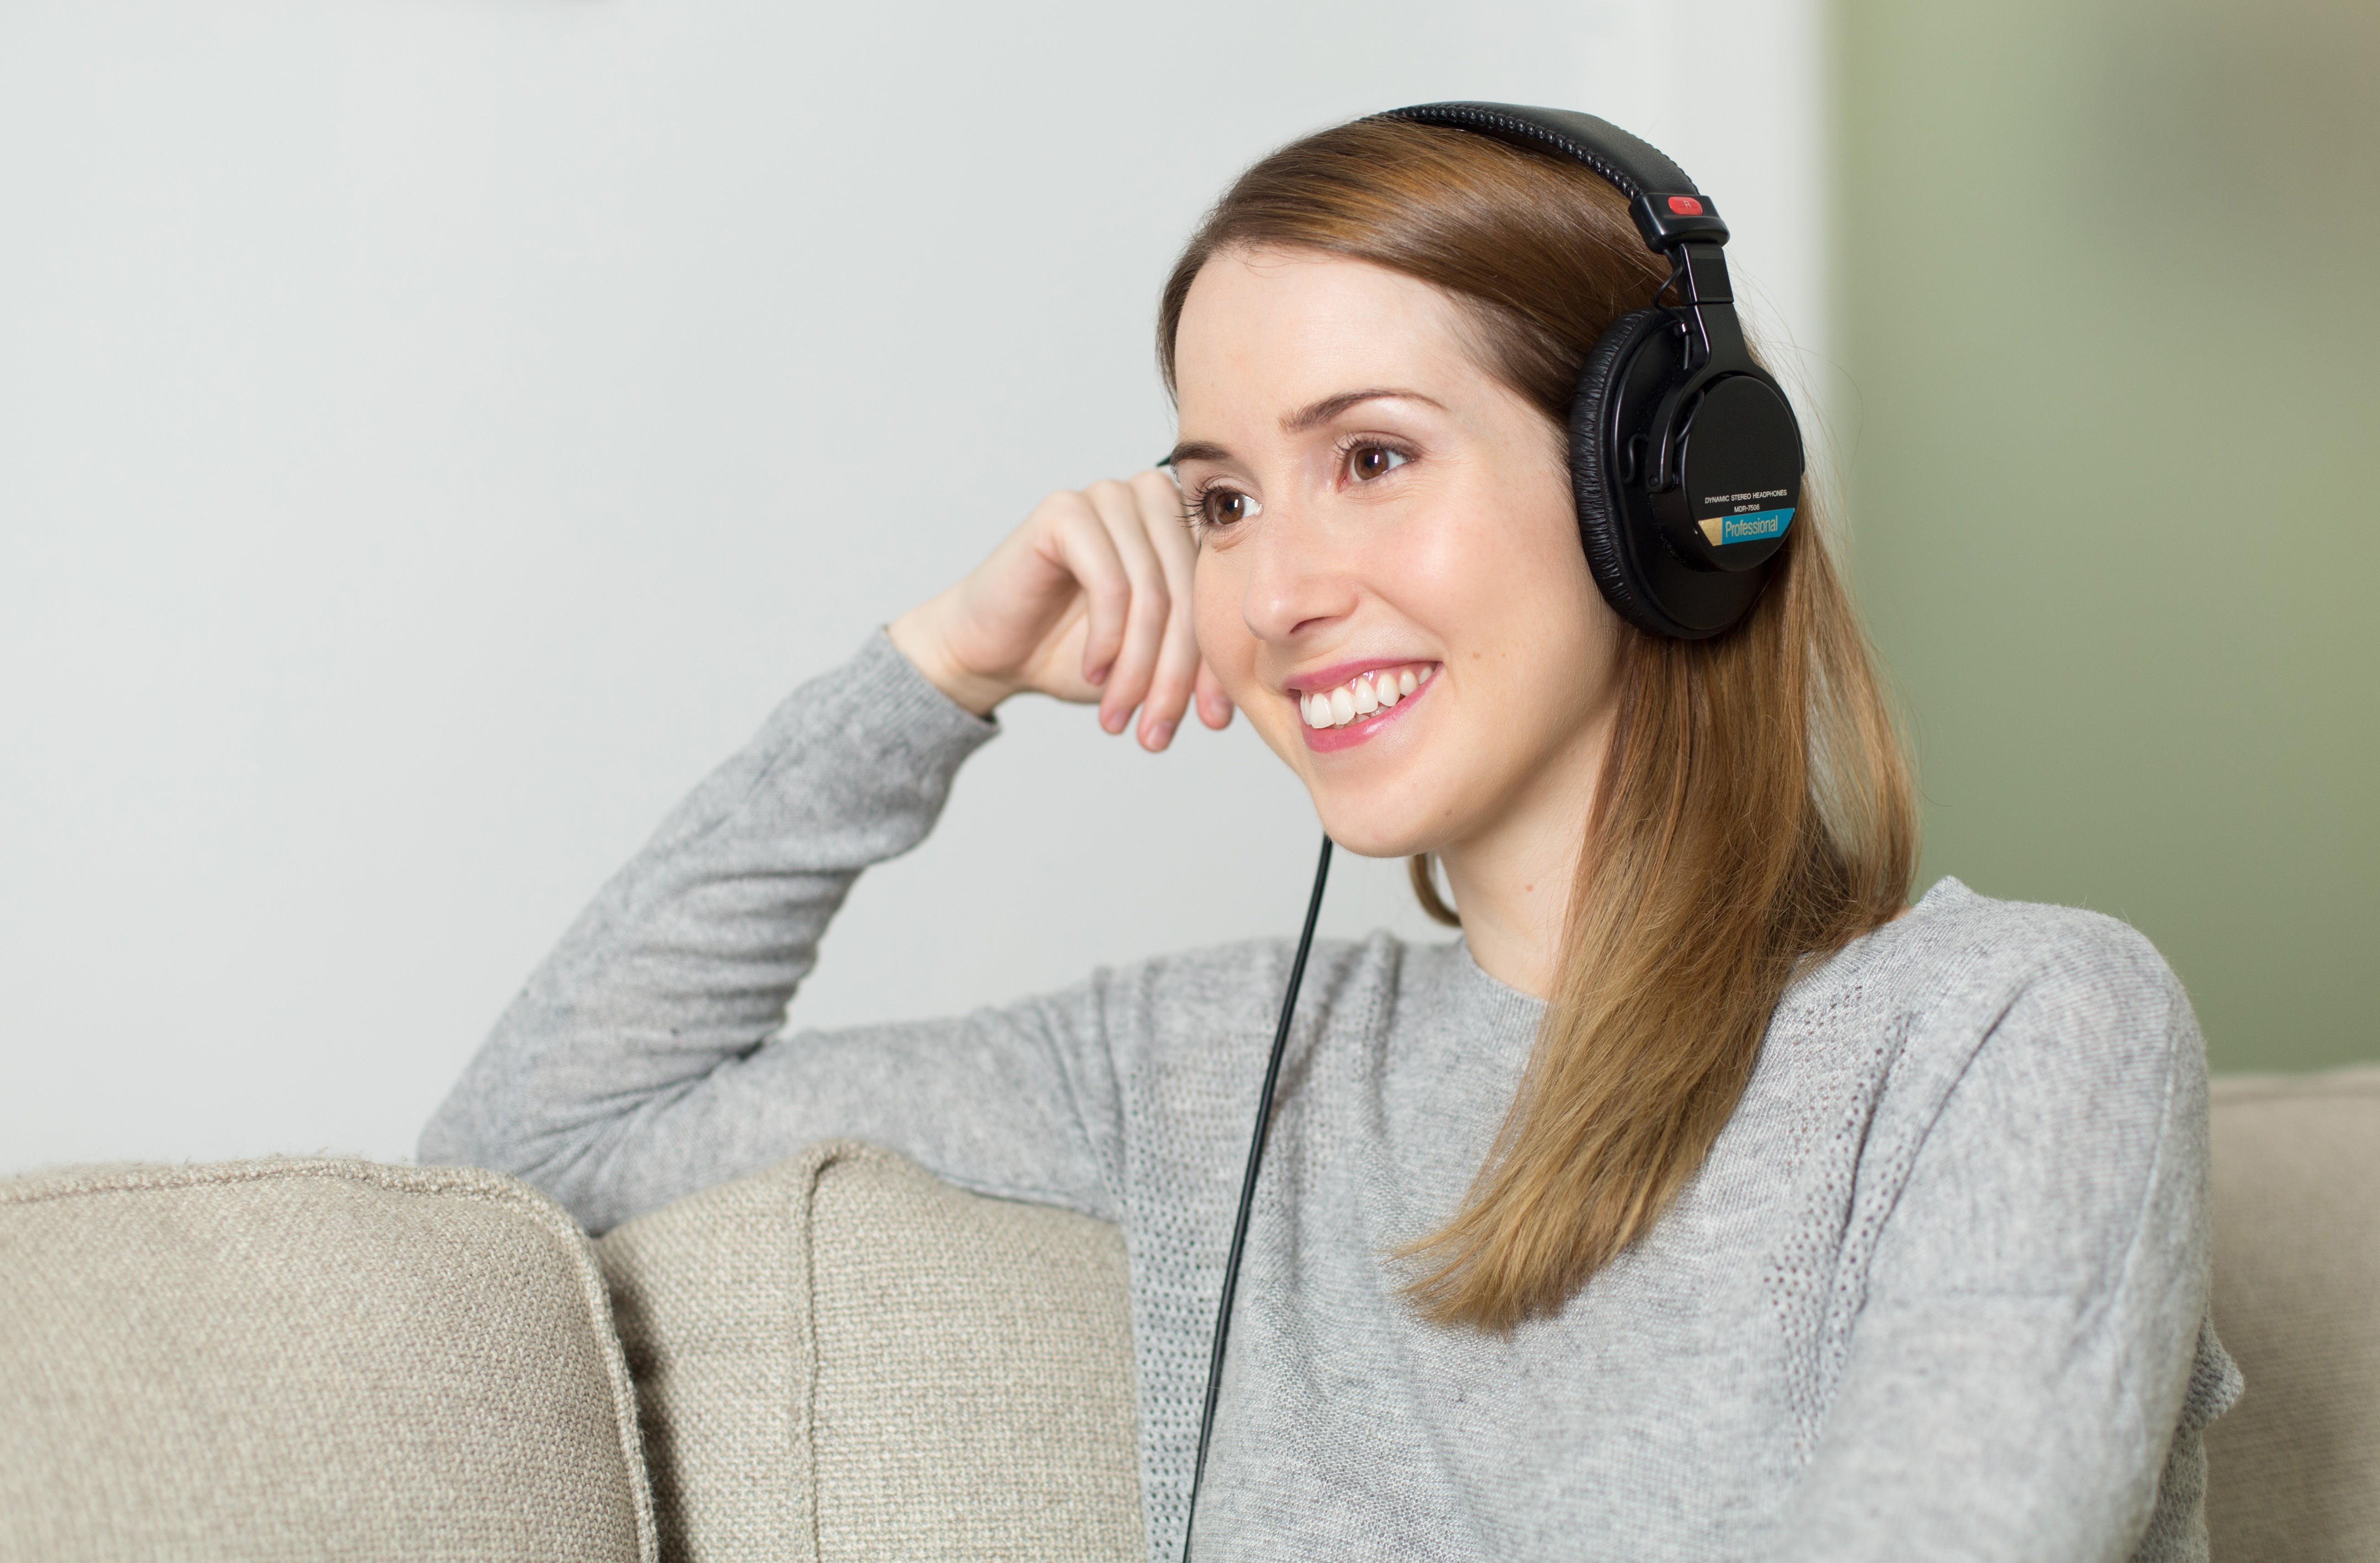 Woman Wearing Black Headphones Smiling